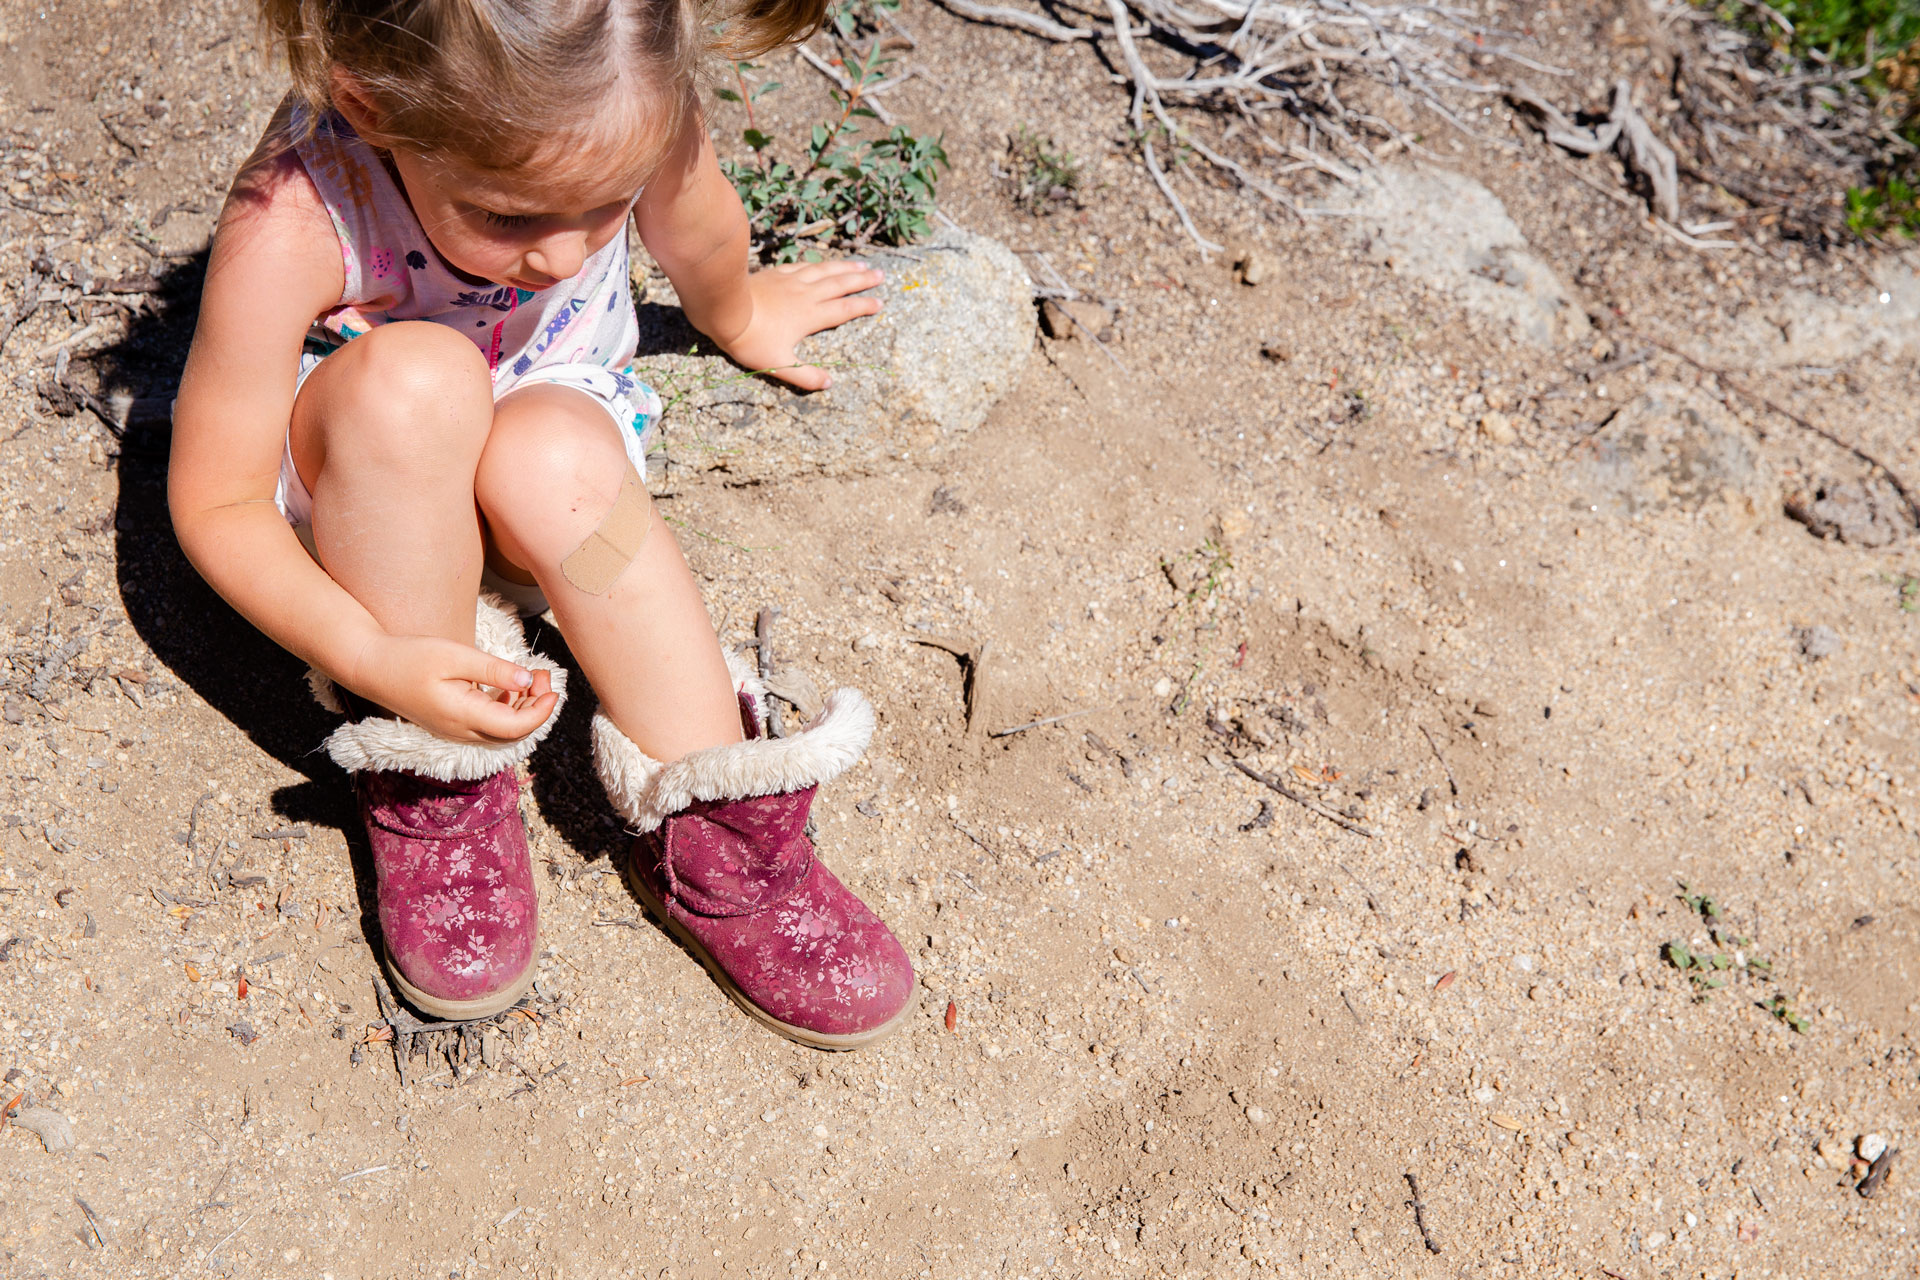 young girl sitting on the dirt holding her legs to her chest and having a bandaid on her knee